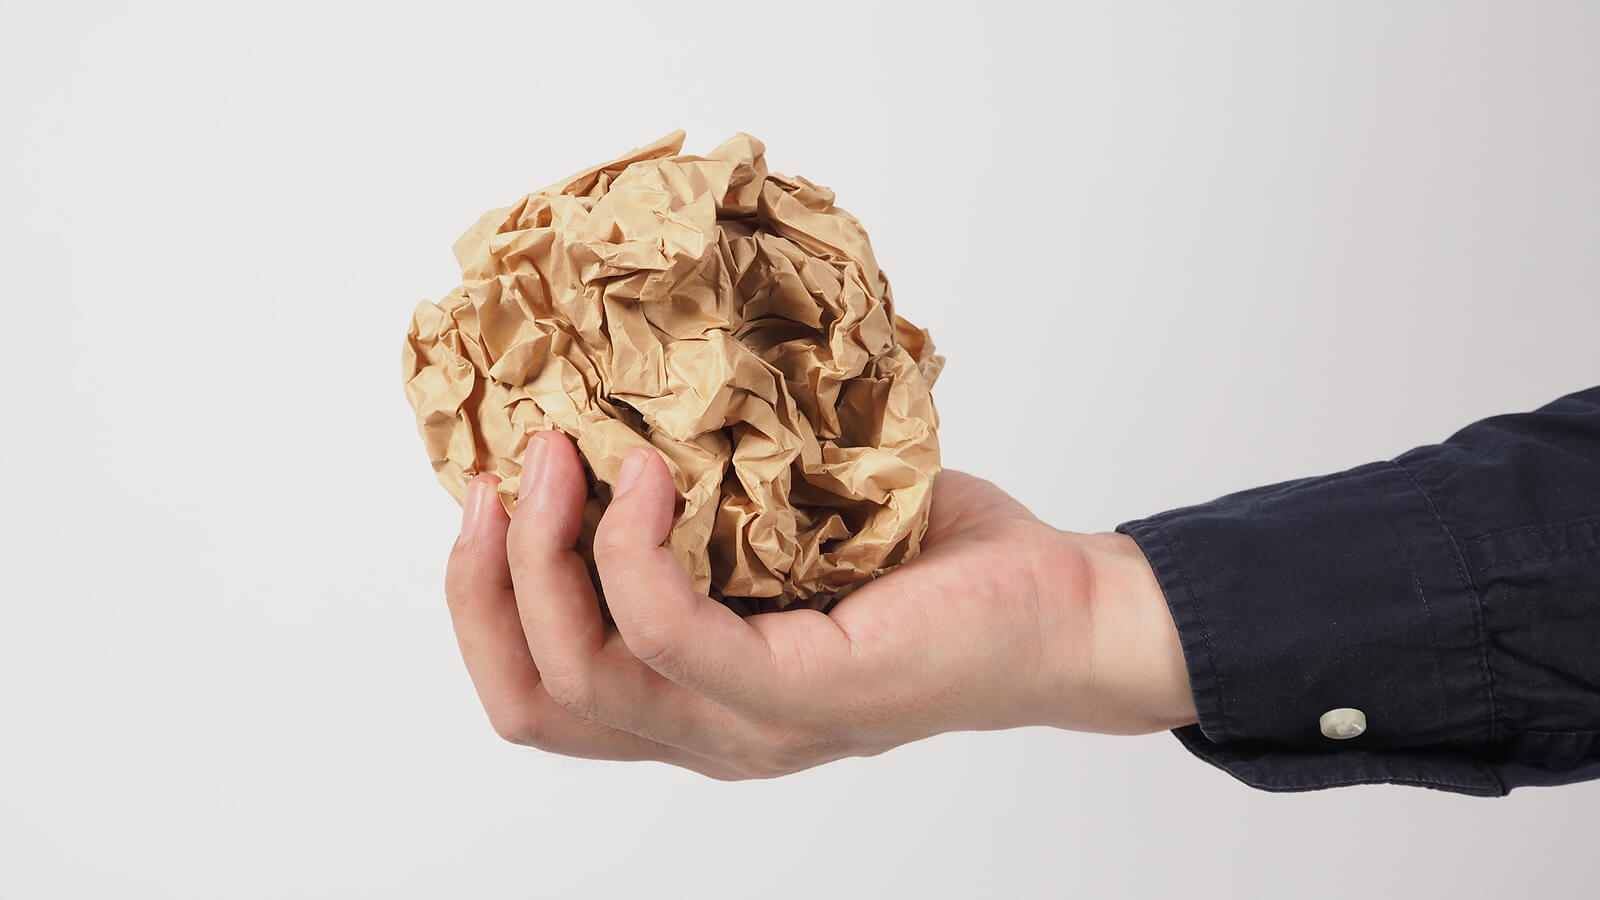 A hand holding a crumpled ball of brown gift wrap paper